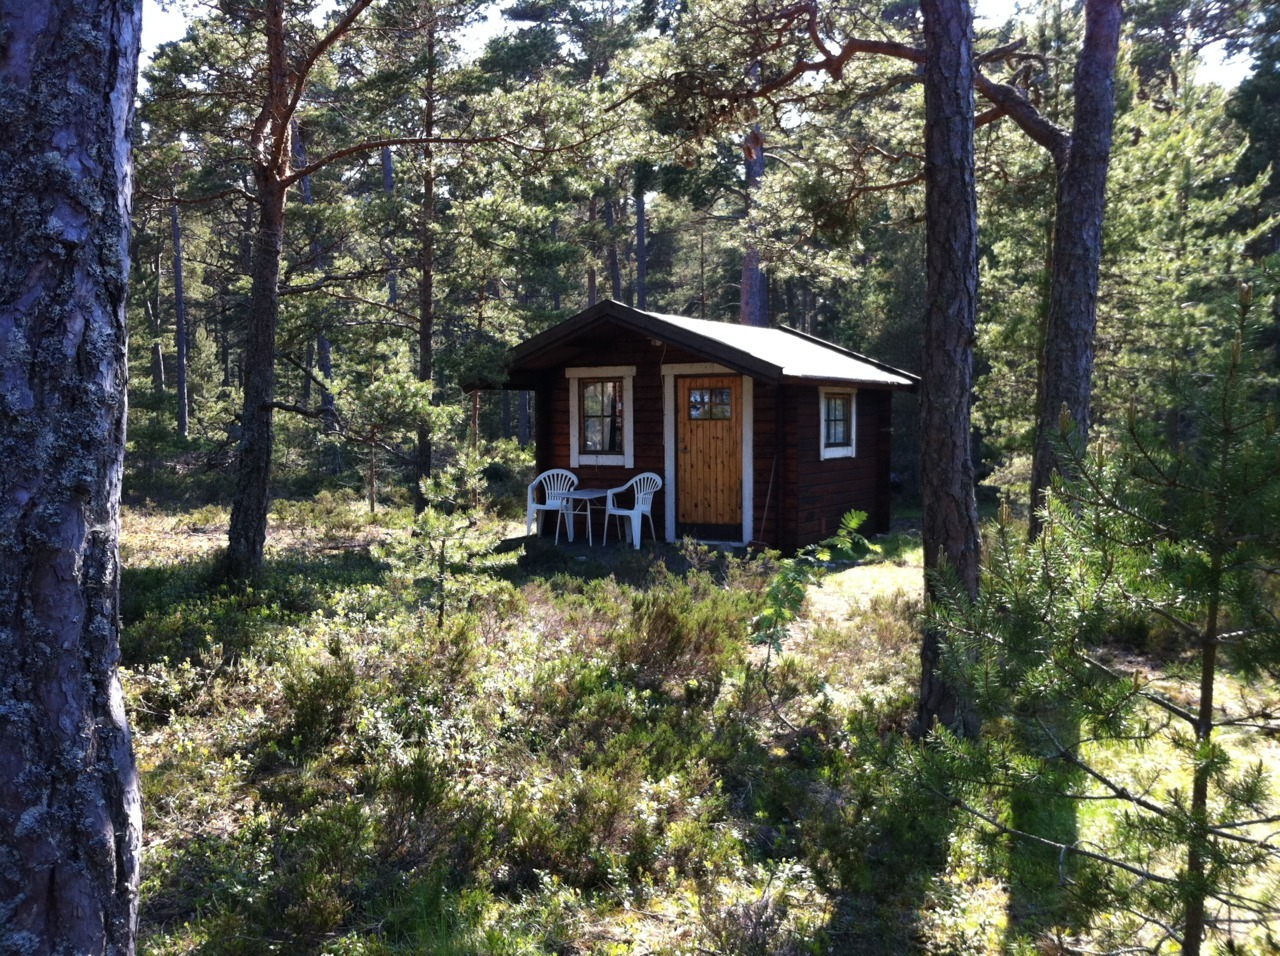 A Summer House on Sandhamn, an island in the Swedish archipelago east of Stockholm.<br /><br /><br /><br /> Submitted and photographed by Victoria Roberts